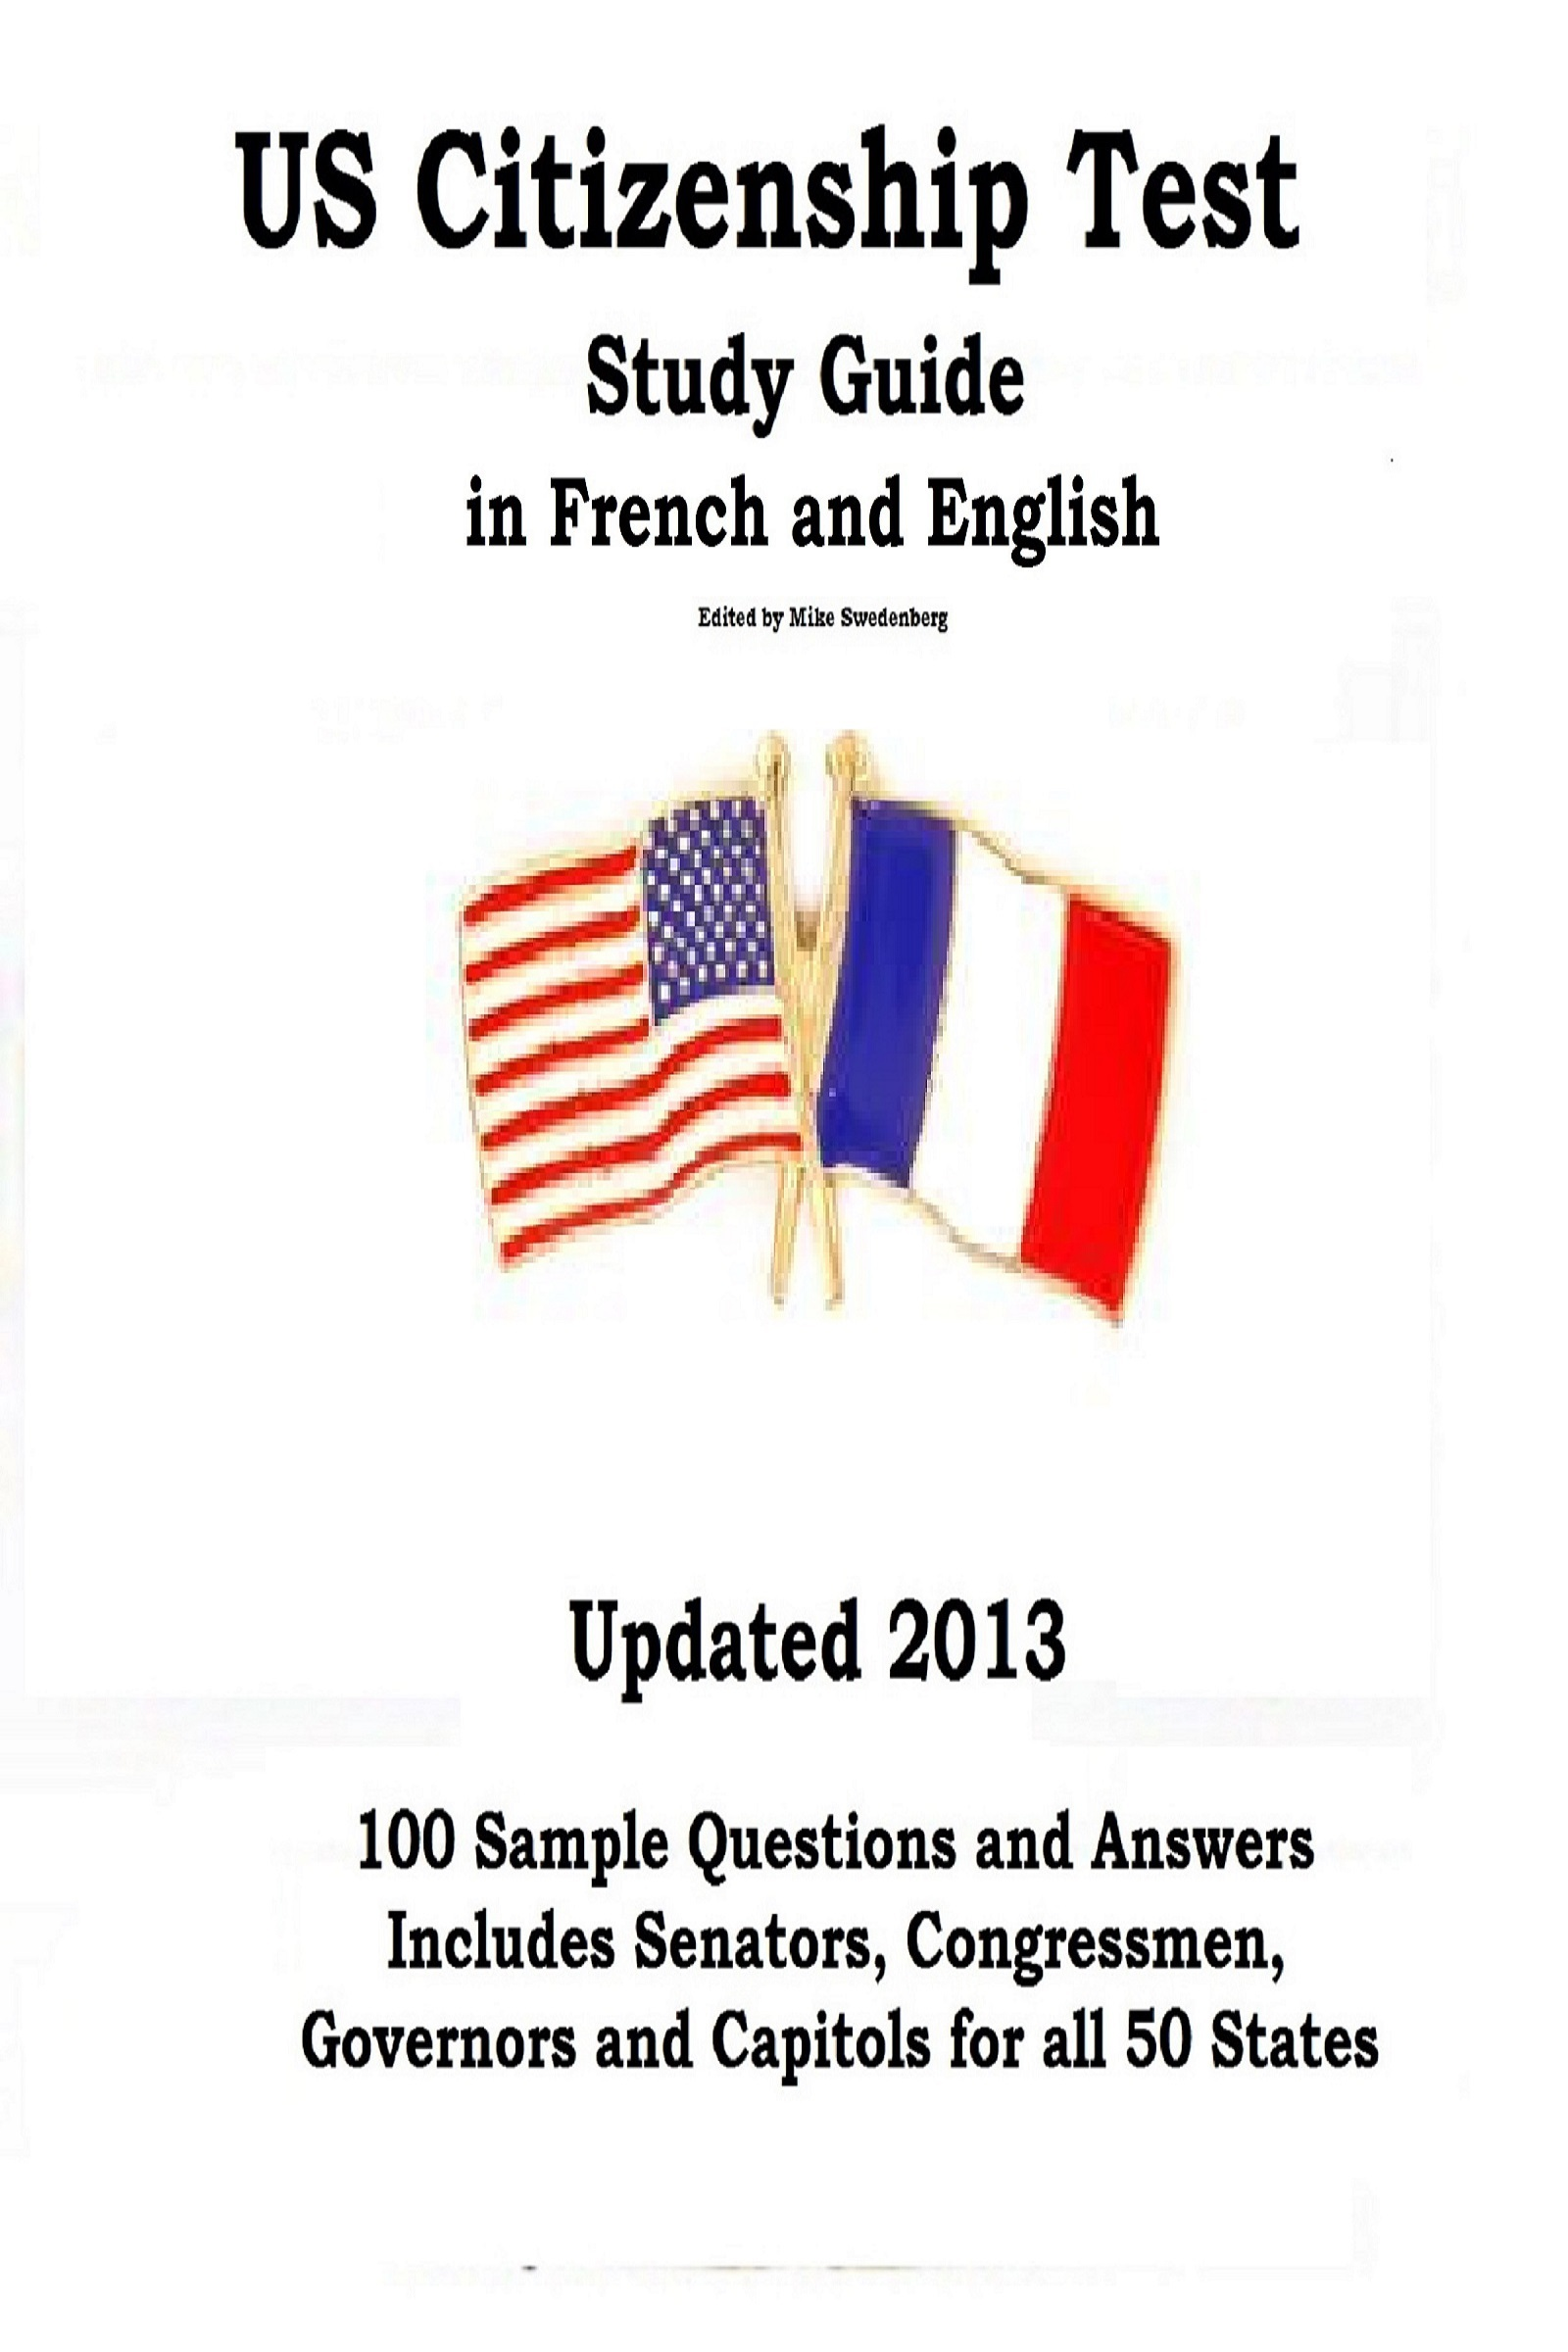 US Citizenship Test Study Guide in French and English By: Mike Swedenberg